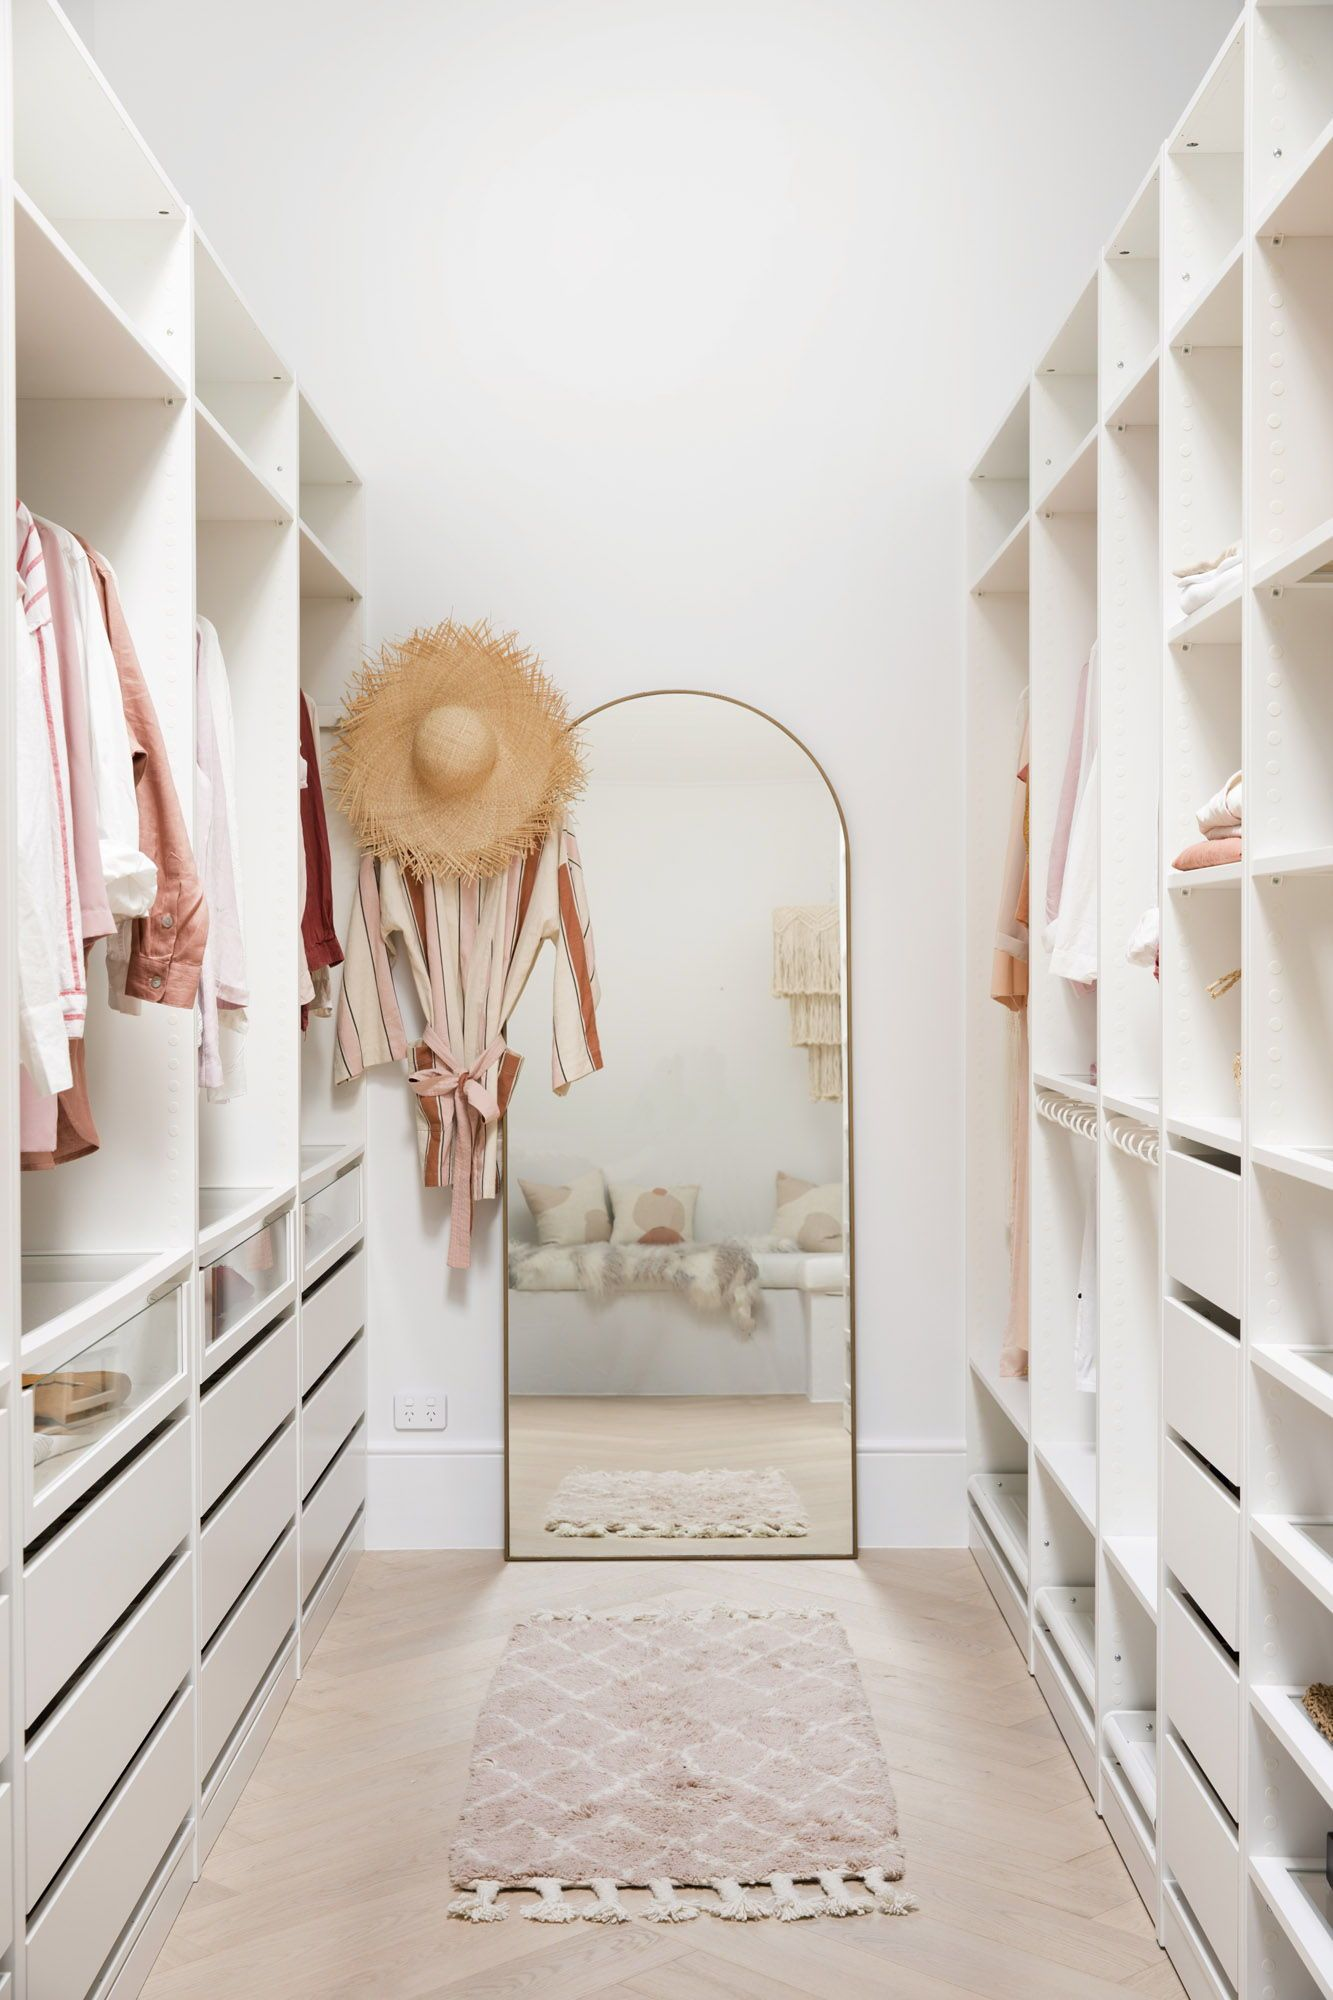 Pin on Closet Boutique (Closet space, organization, etc.)